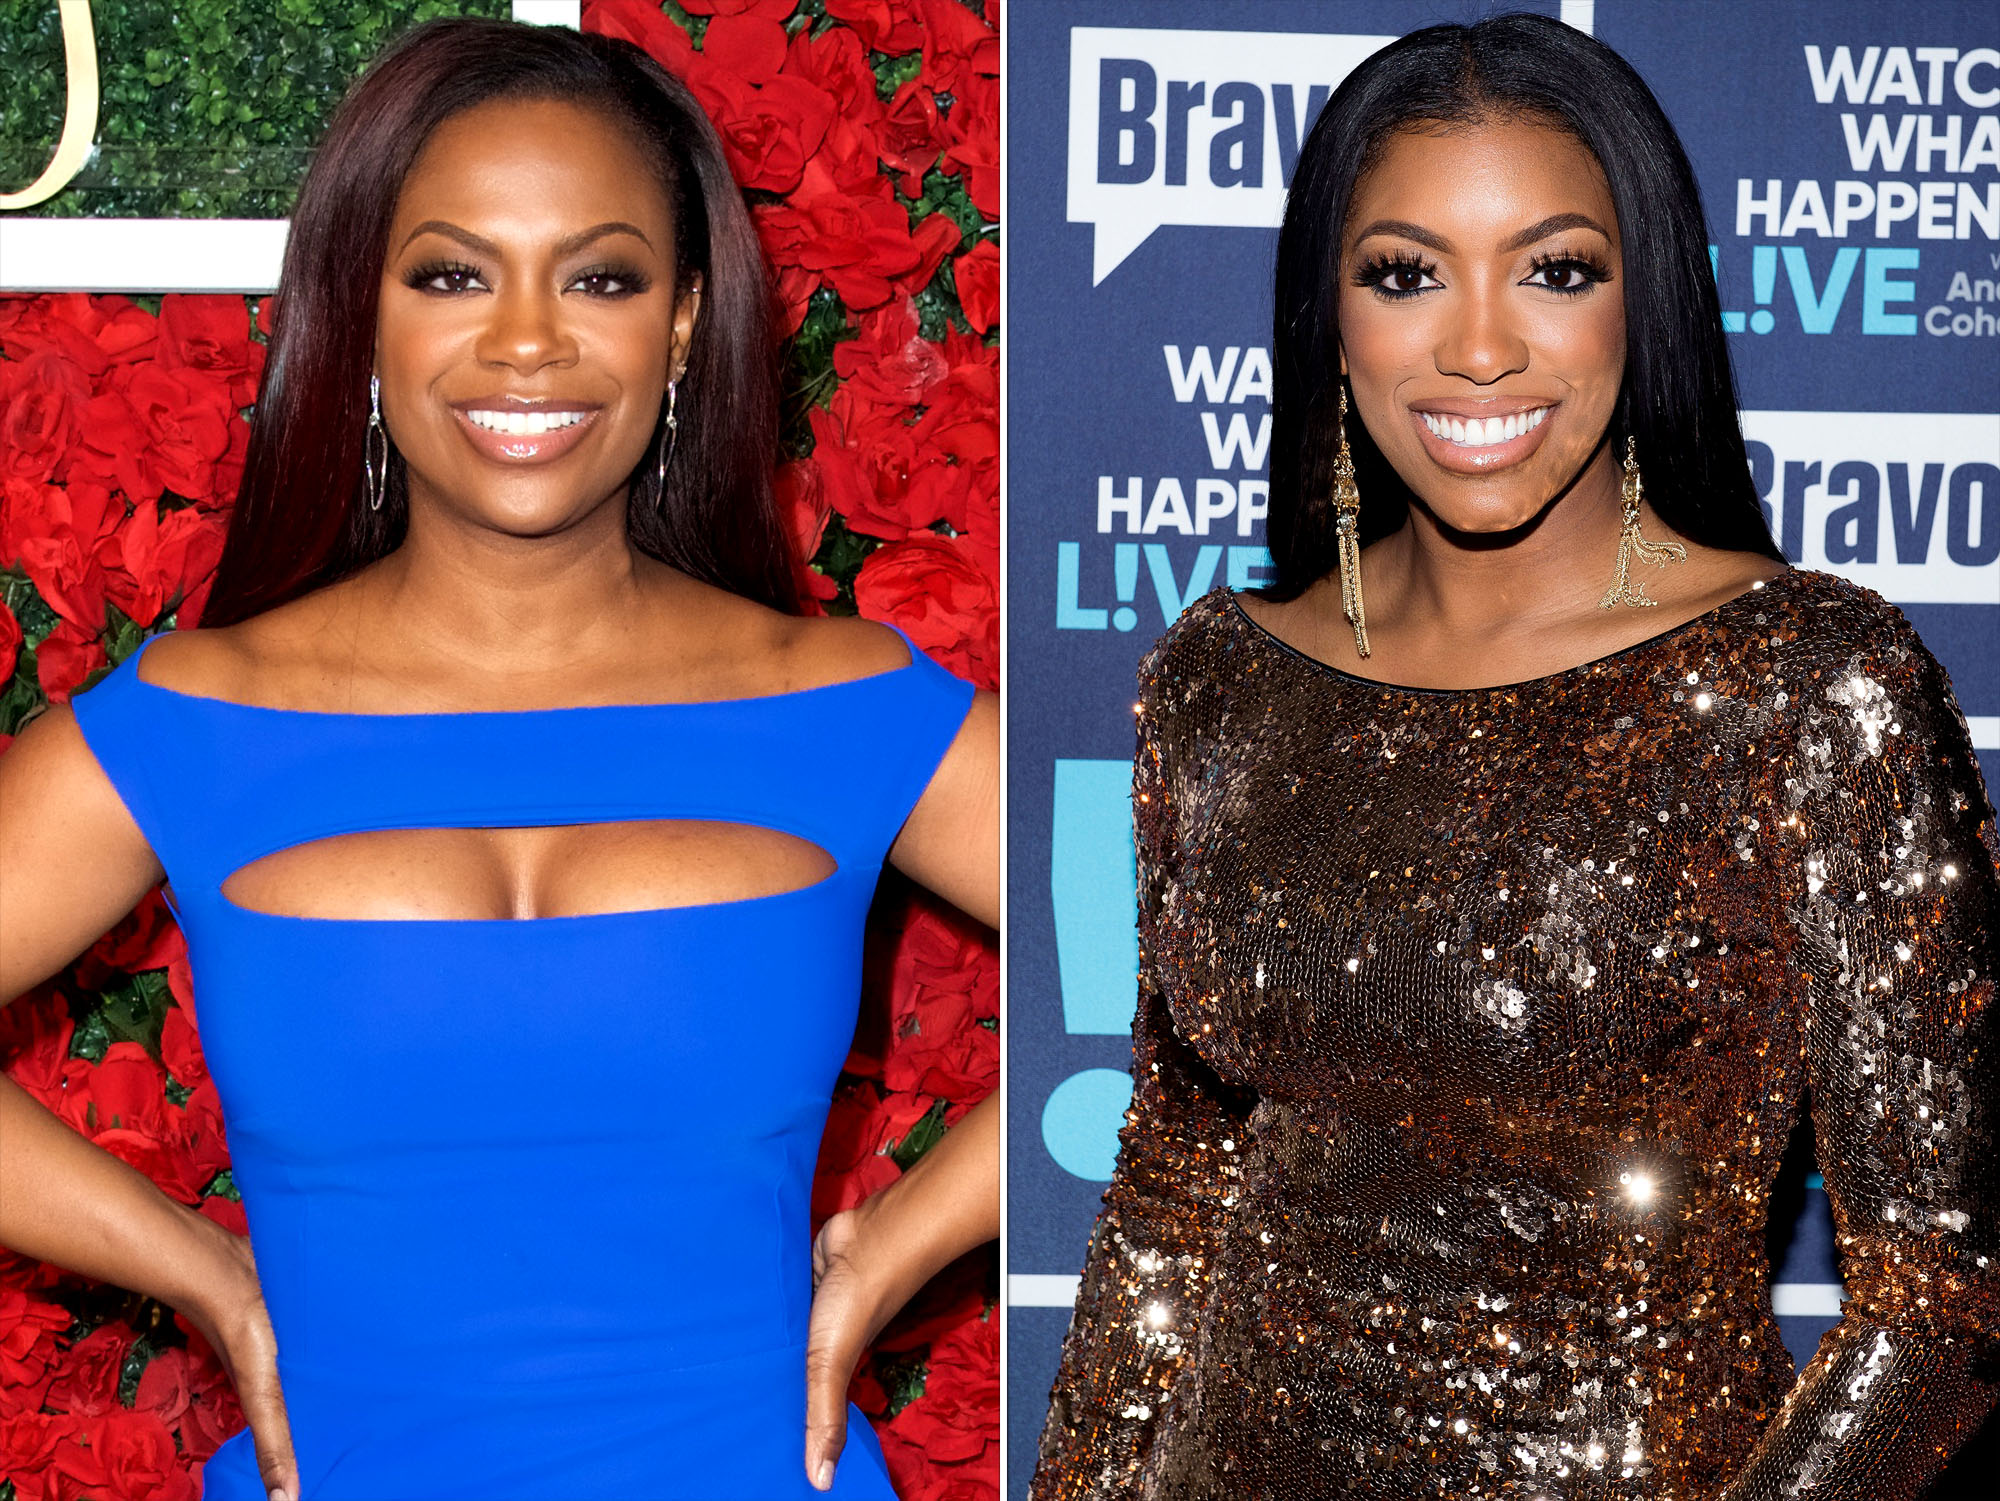 kandi-burruss-and-porsha-williams-are-gushing-over-shamea-morton-for-her-birthday-with-gorgeous-pics-and-emotional-messages